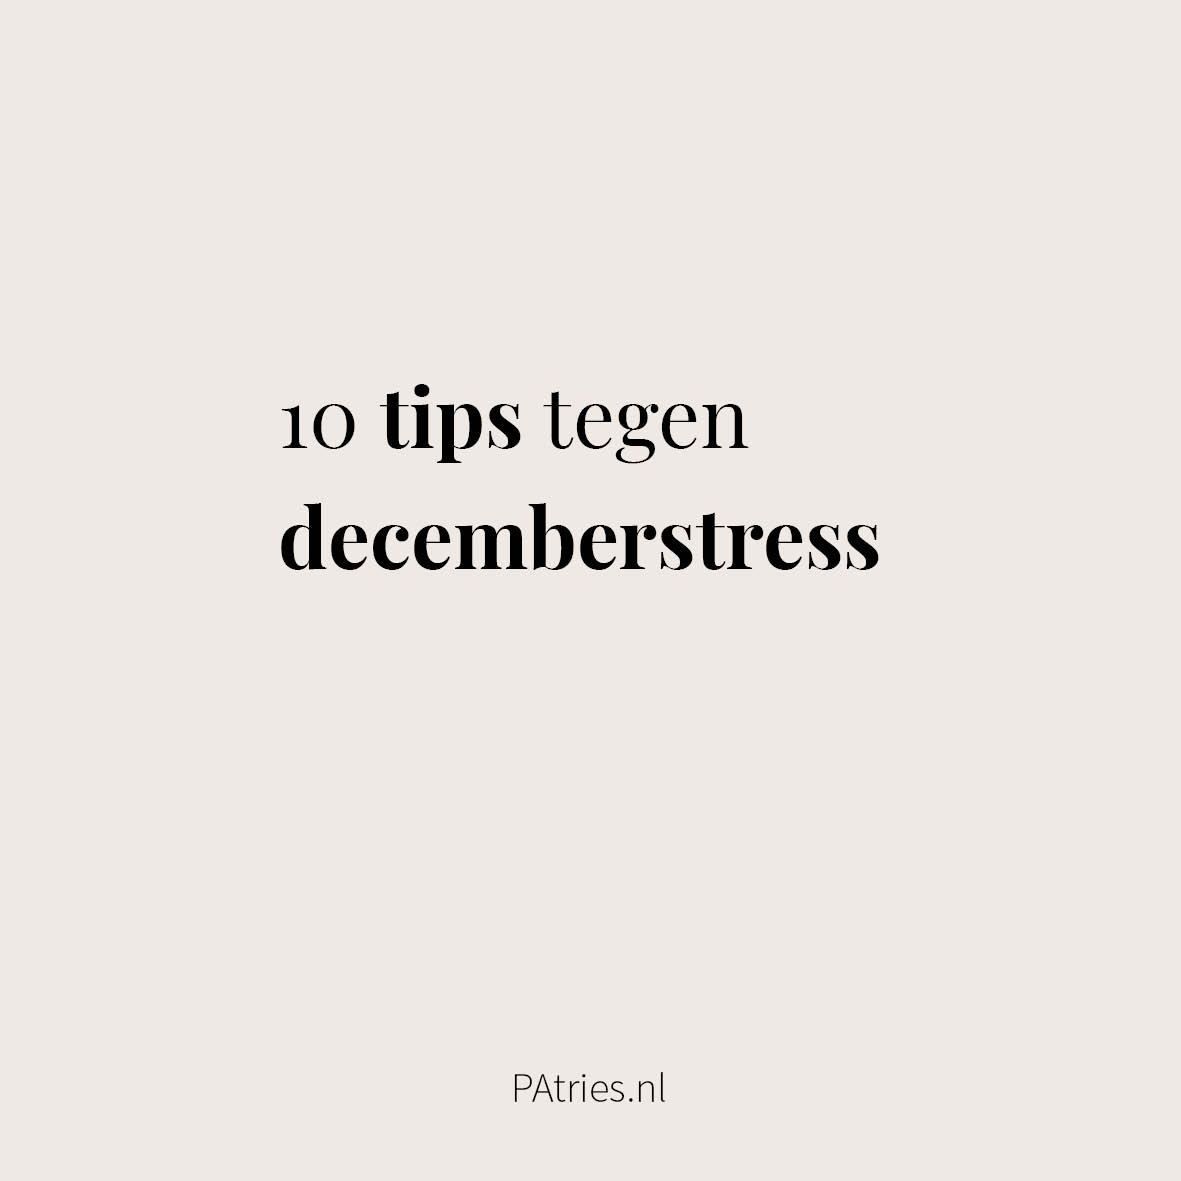 tips decemberstress PAtries